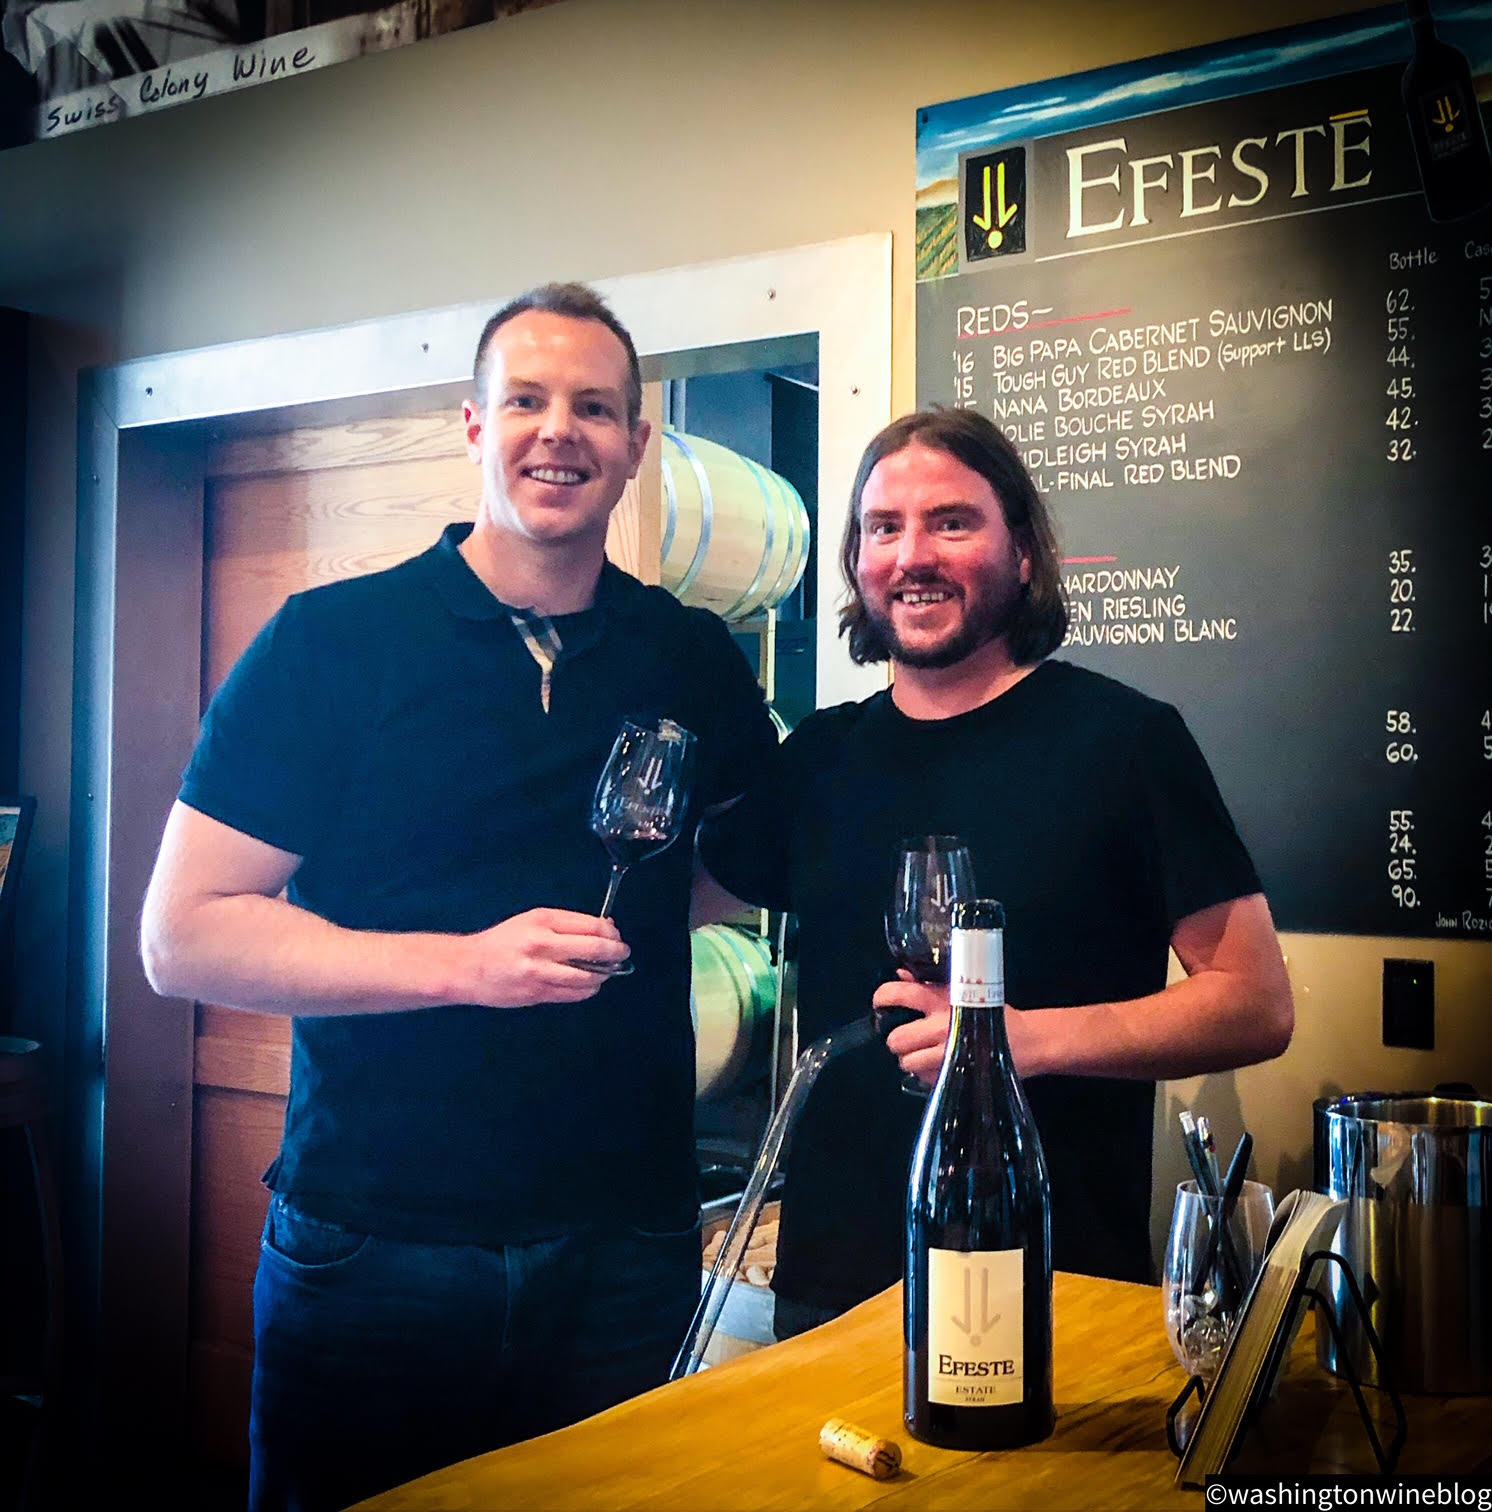 Here I am with the talented Mark Fiore (R) at EFESTE.